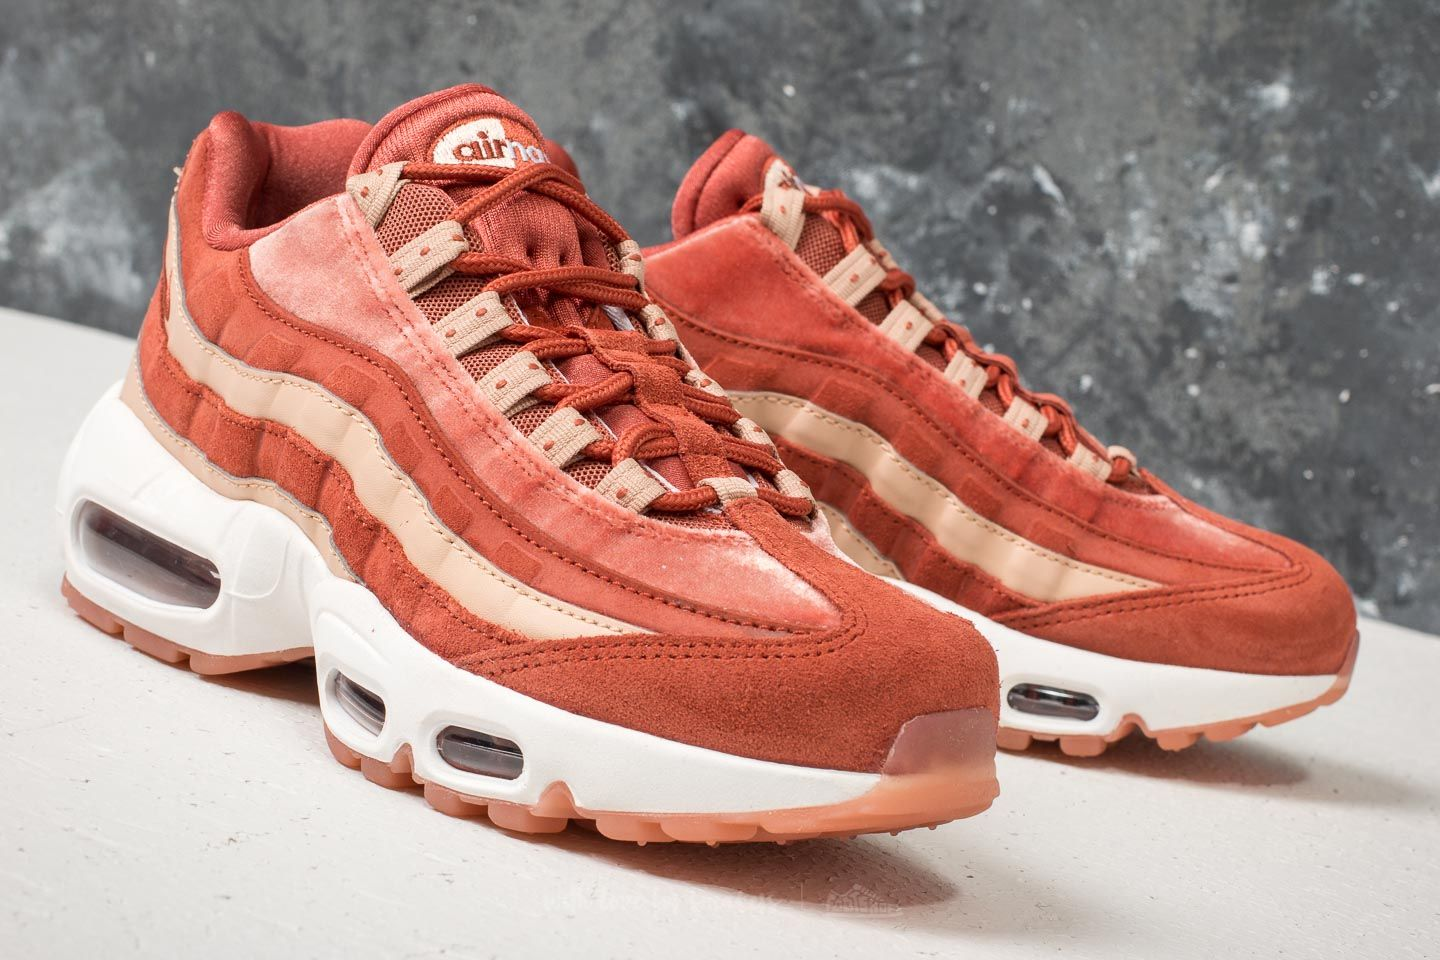 buy popular 30819 f63e9 Nike Wmns Air Max 95 LX Dusty Peach/ Dusty Peach | Footshop